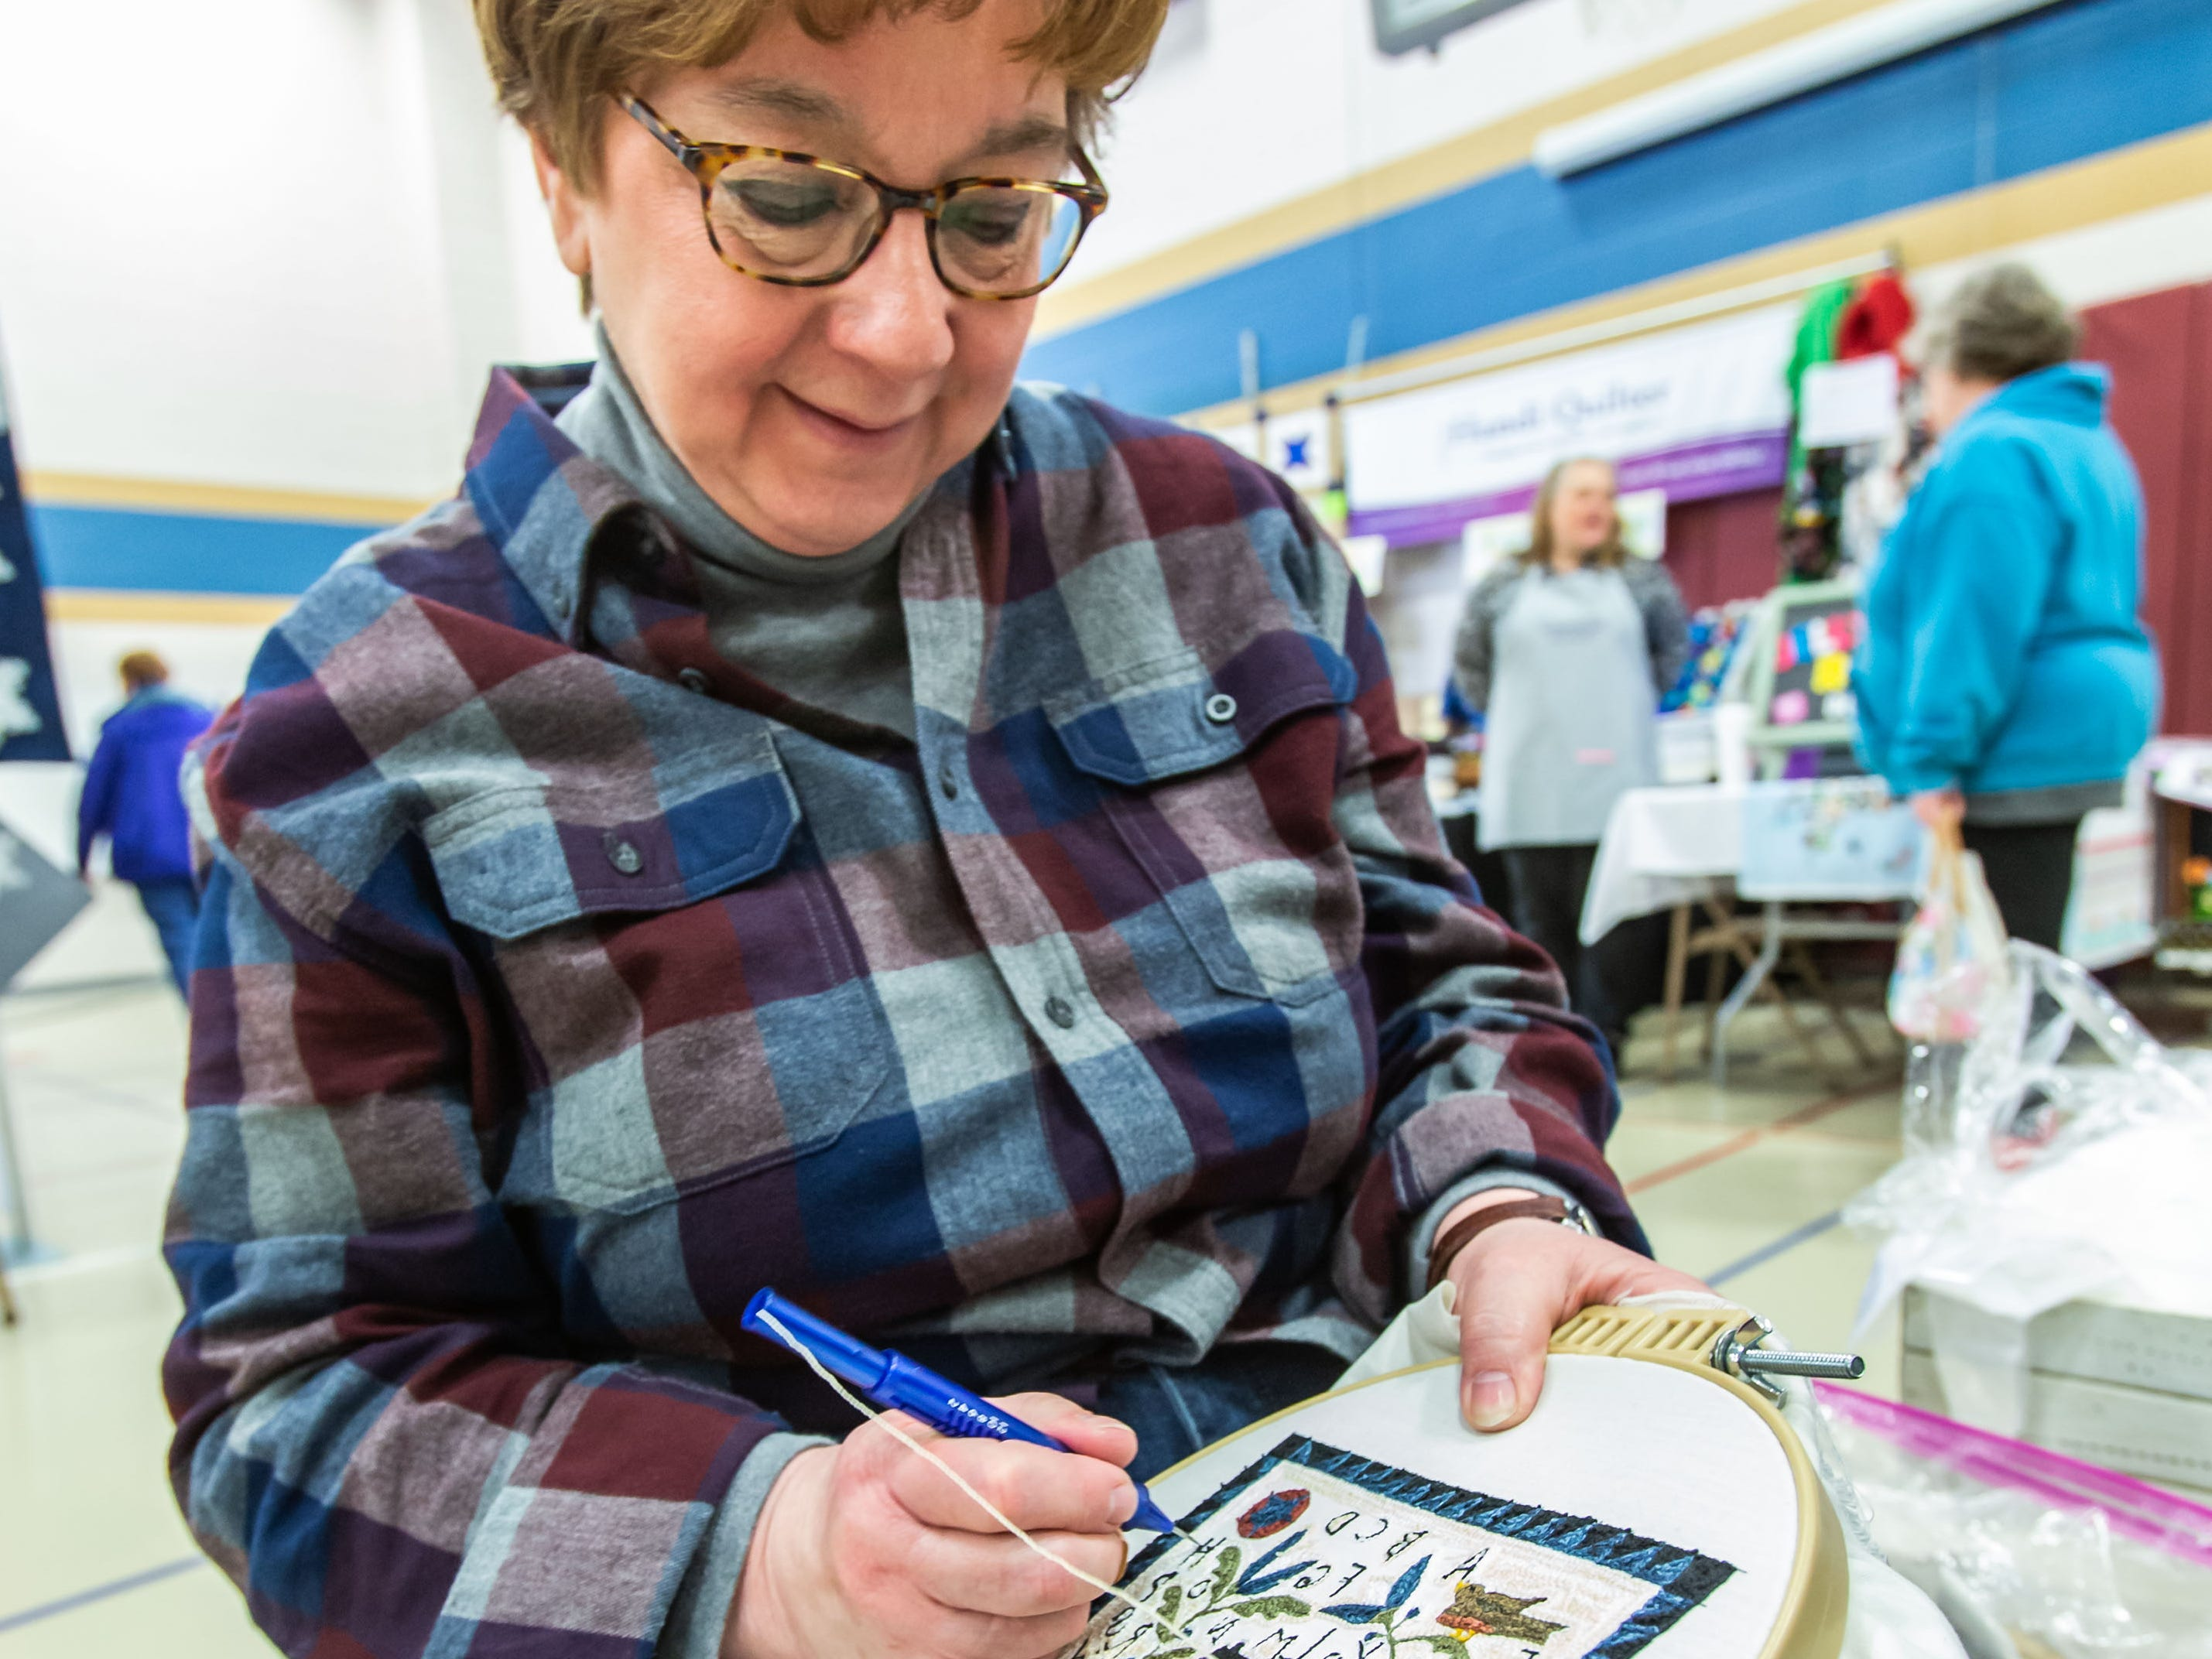 Deb Day of Stoughton works on her punch needle embroidery during the Mukwonago Crazy Quilters 32nd annual Quilt Show at Park View Middle School on Saturday, March 30, 2019.